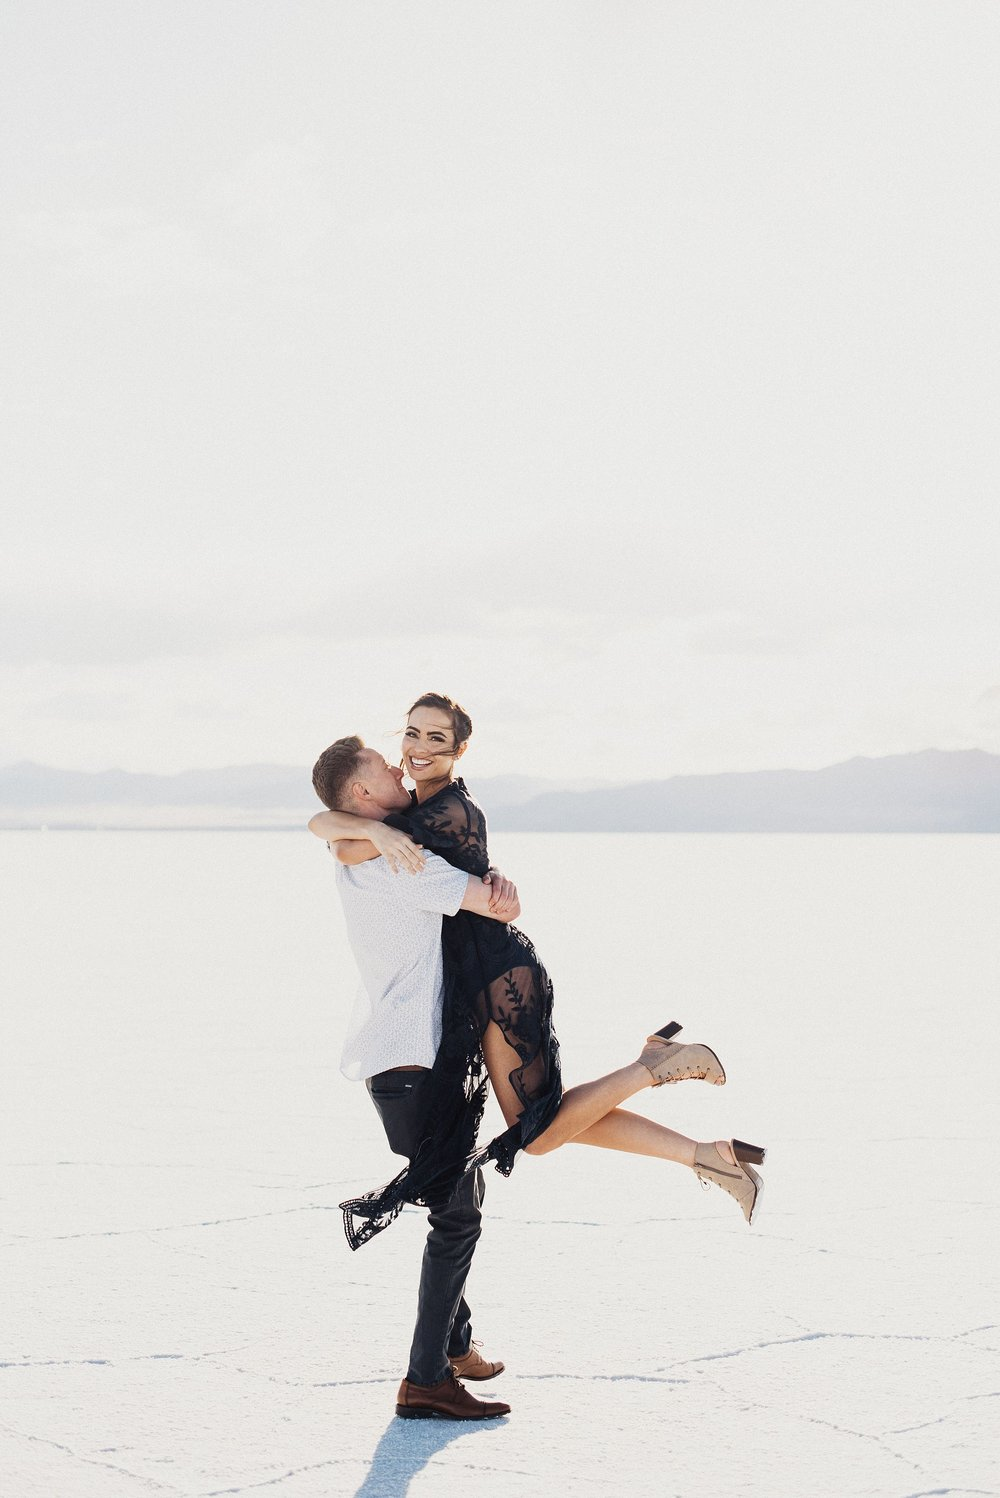 Engagements at Bonneville Salt Flats